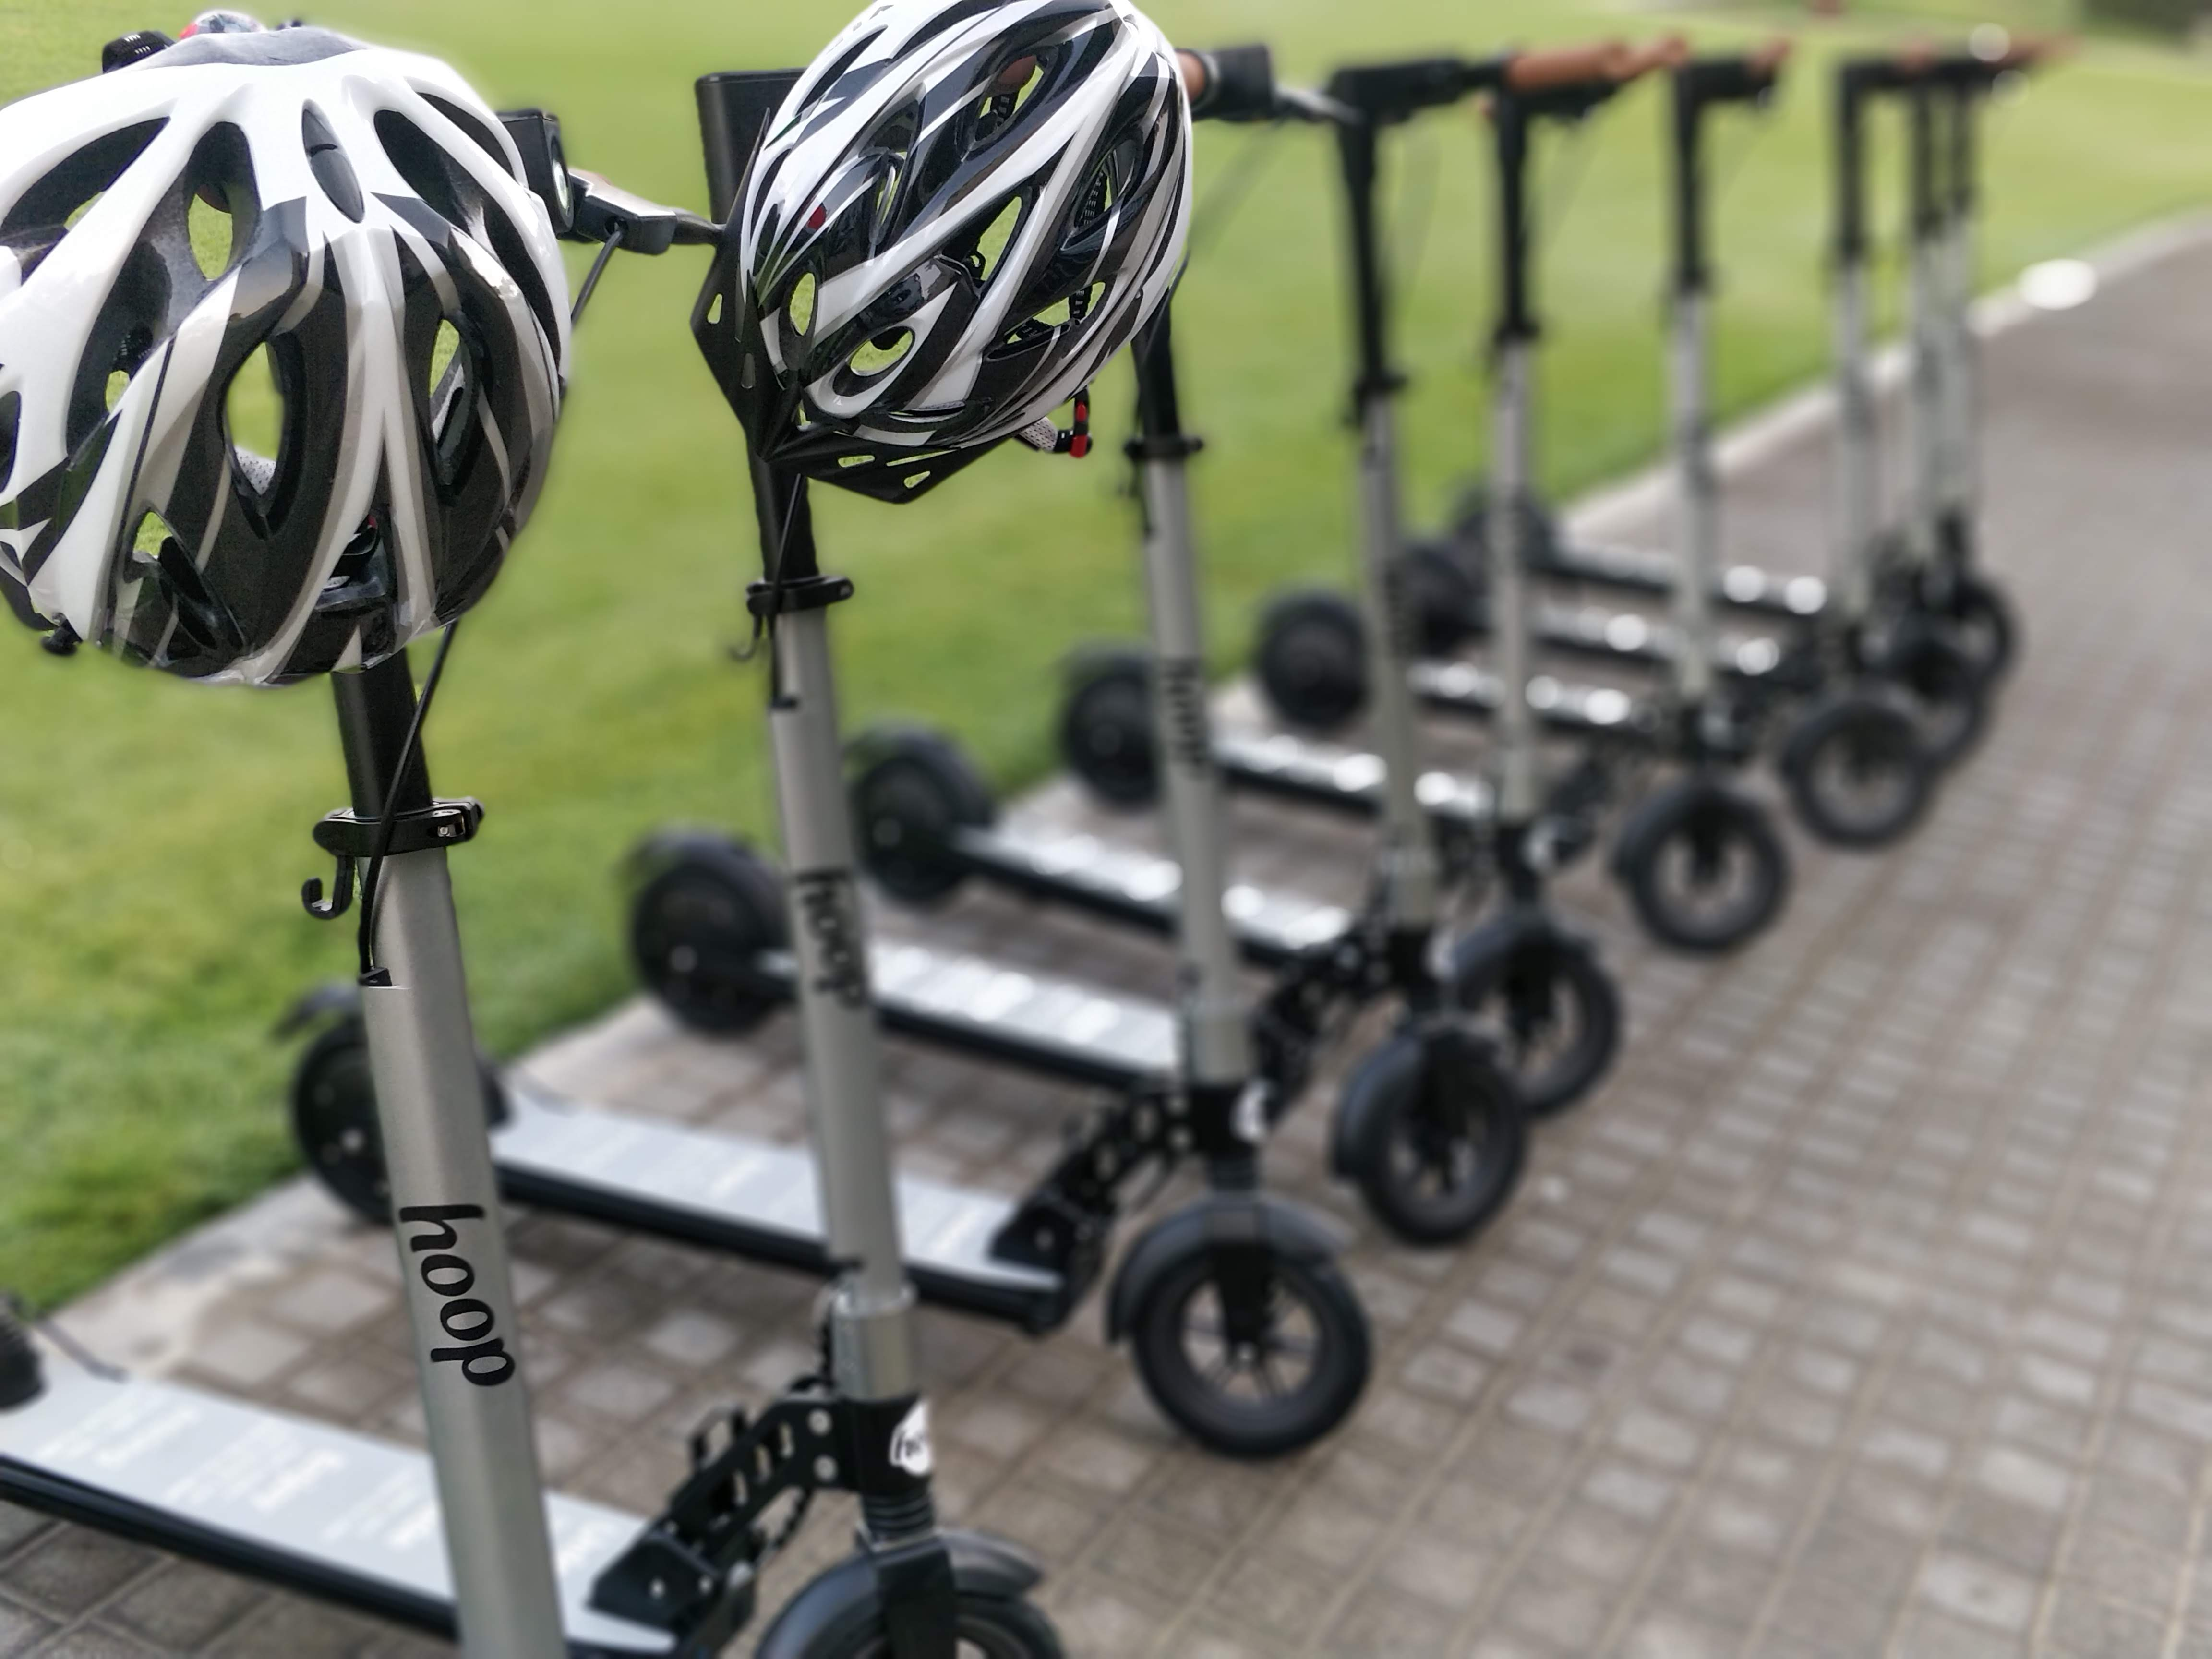 Hoop's electric scooters launched in Dubai in early March. Helsinki will follow as the spring weather arrives in the Nordics.